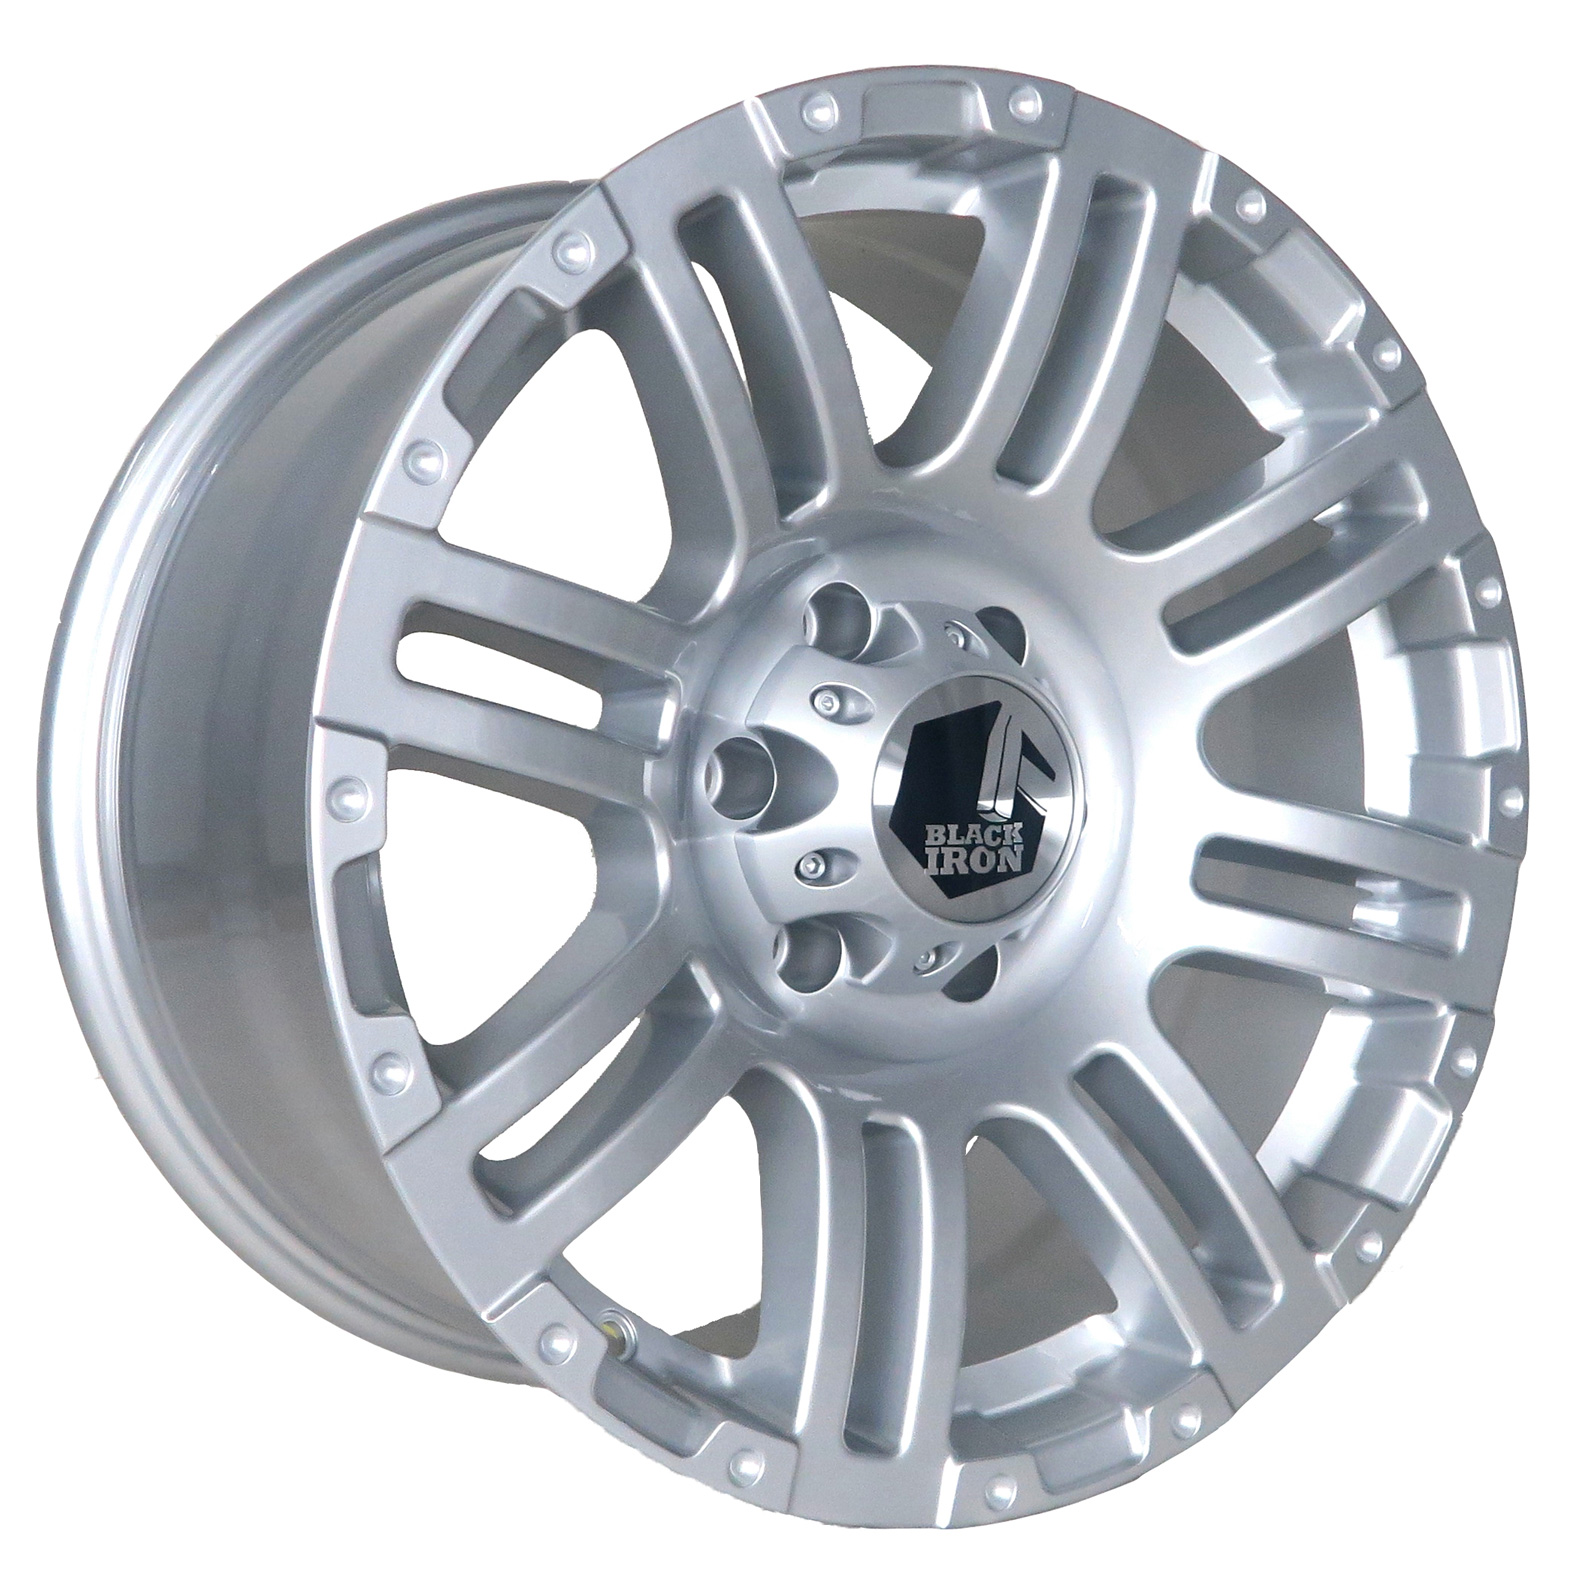 Black Iron Rebel Silver Wheel